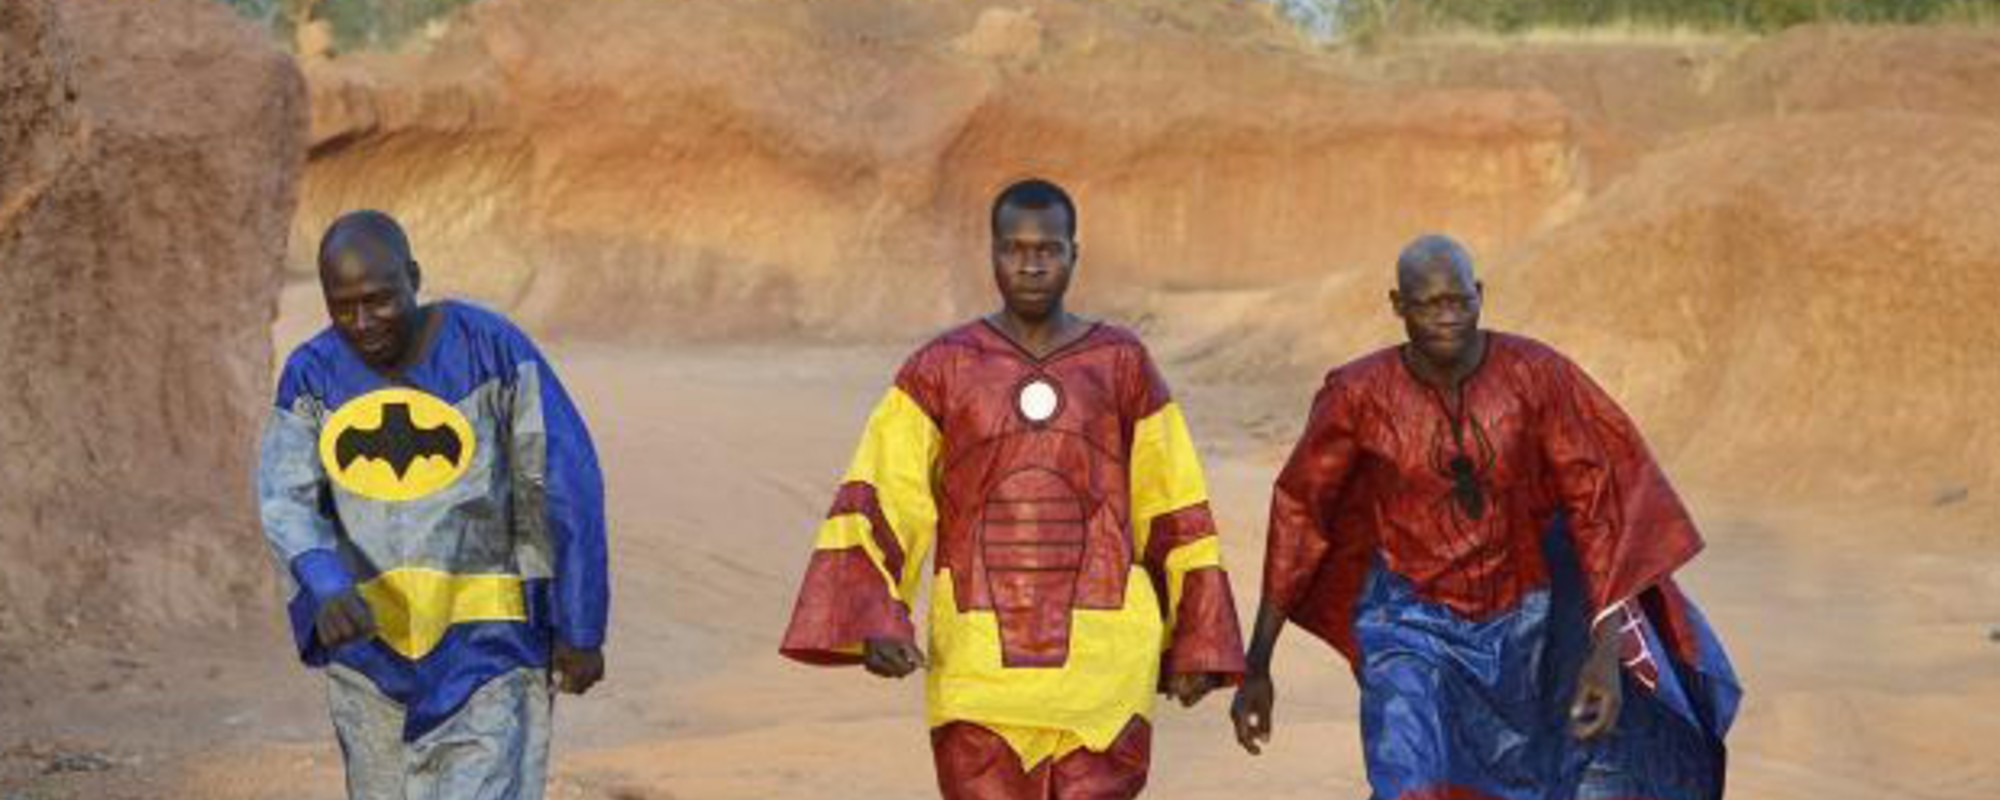 The Superheroes of Ouagadougou